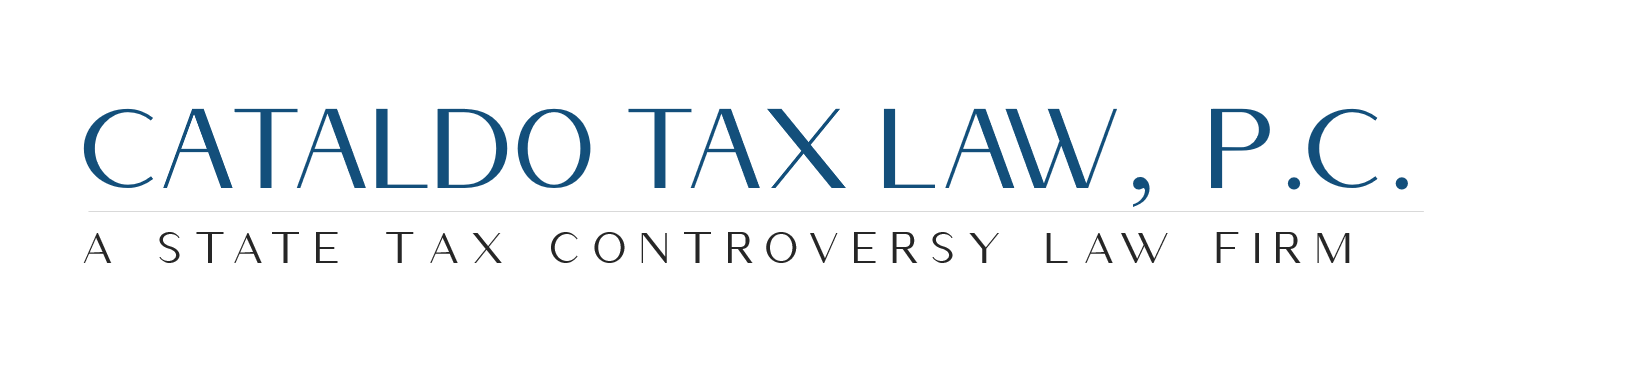 Cataldo Tax Law, P.C.